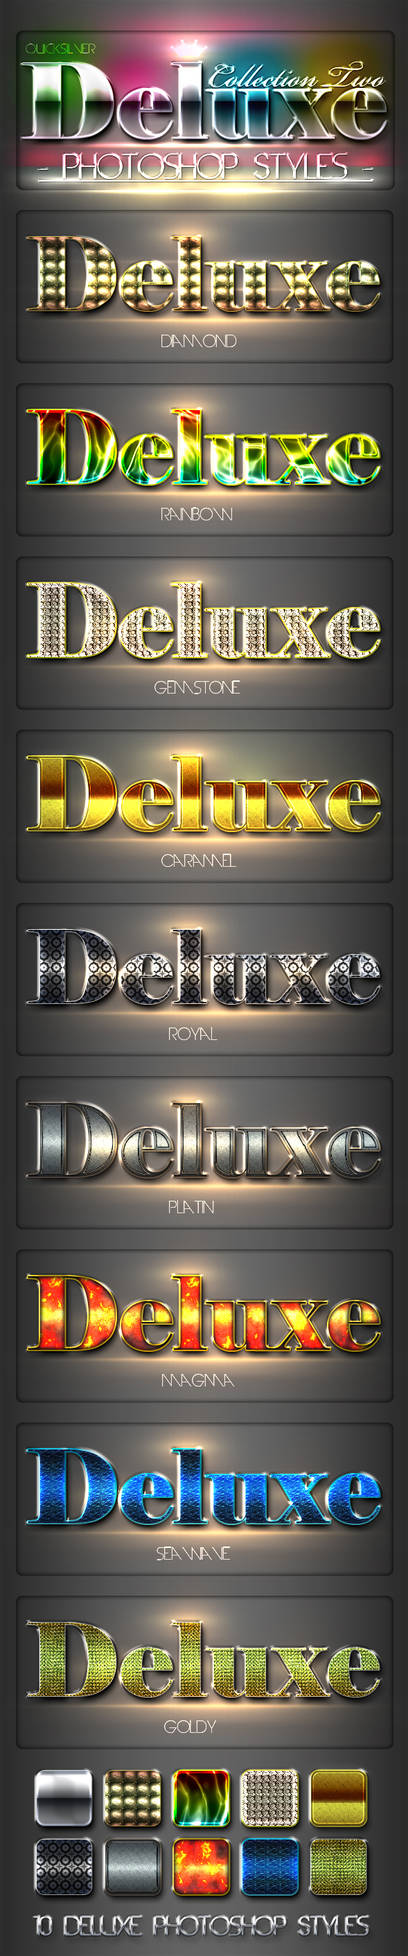 10 DeLuxe Photoshop Layer Styles FREE ASL FILE